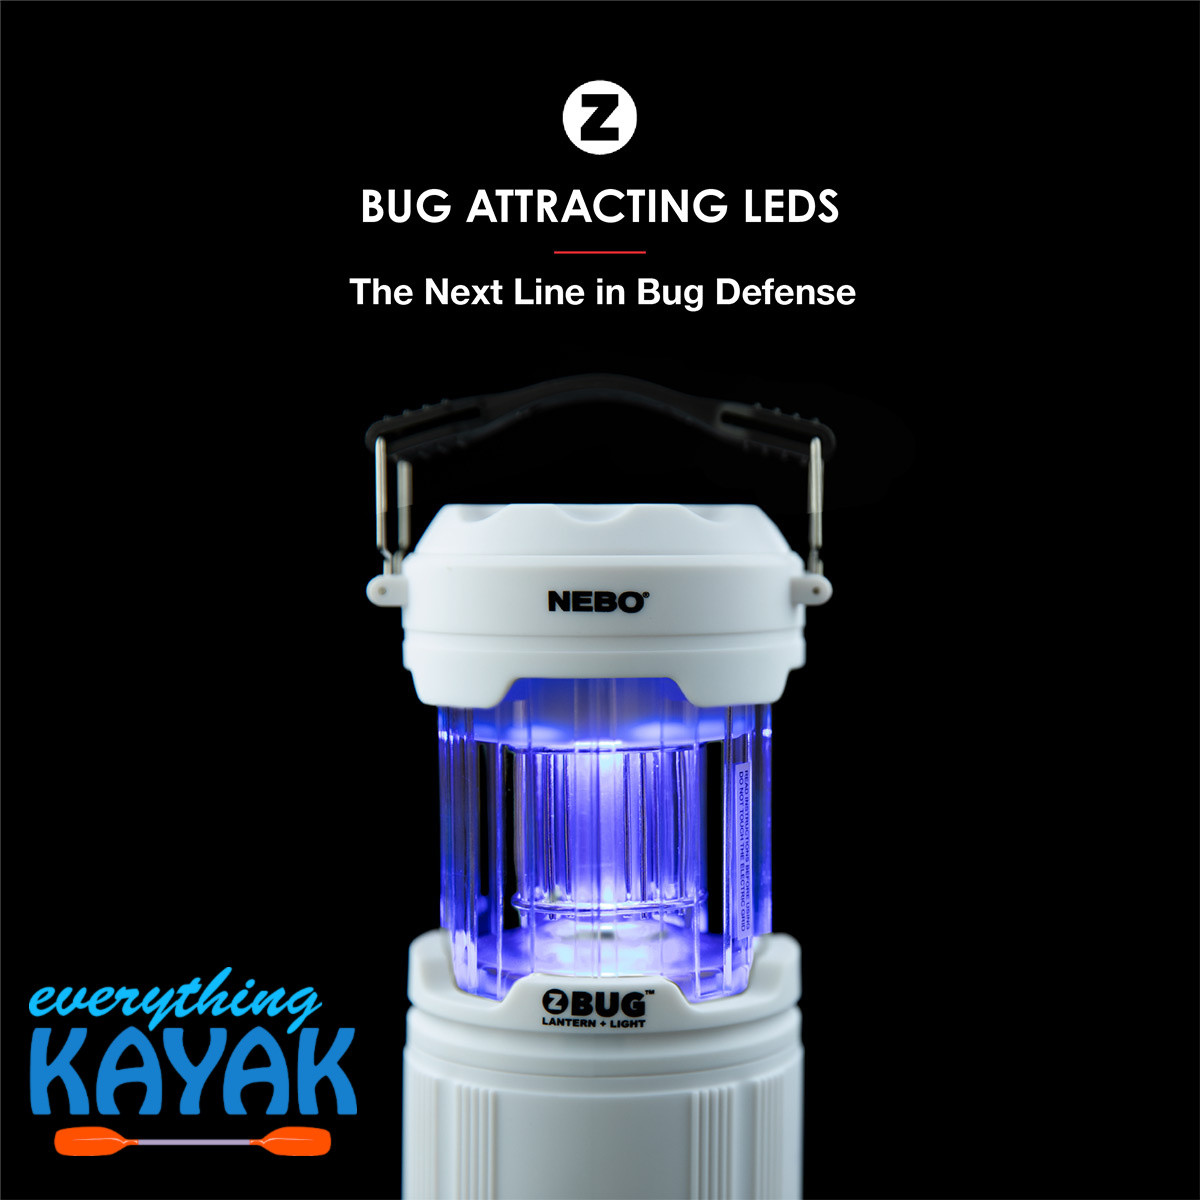 Nebo Z Bug Light | Everything Kayak & Bicycles